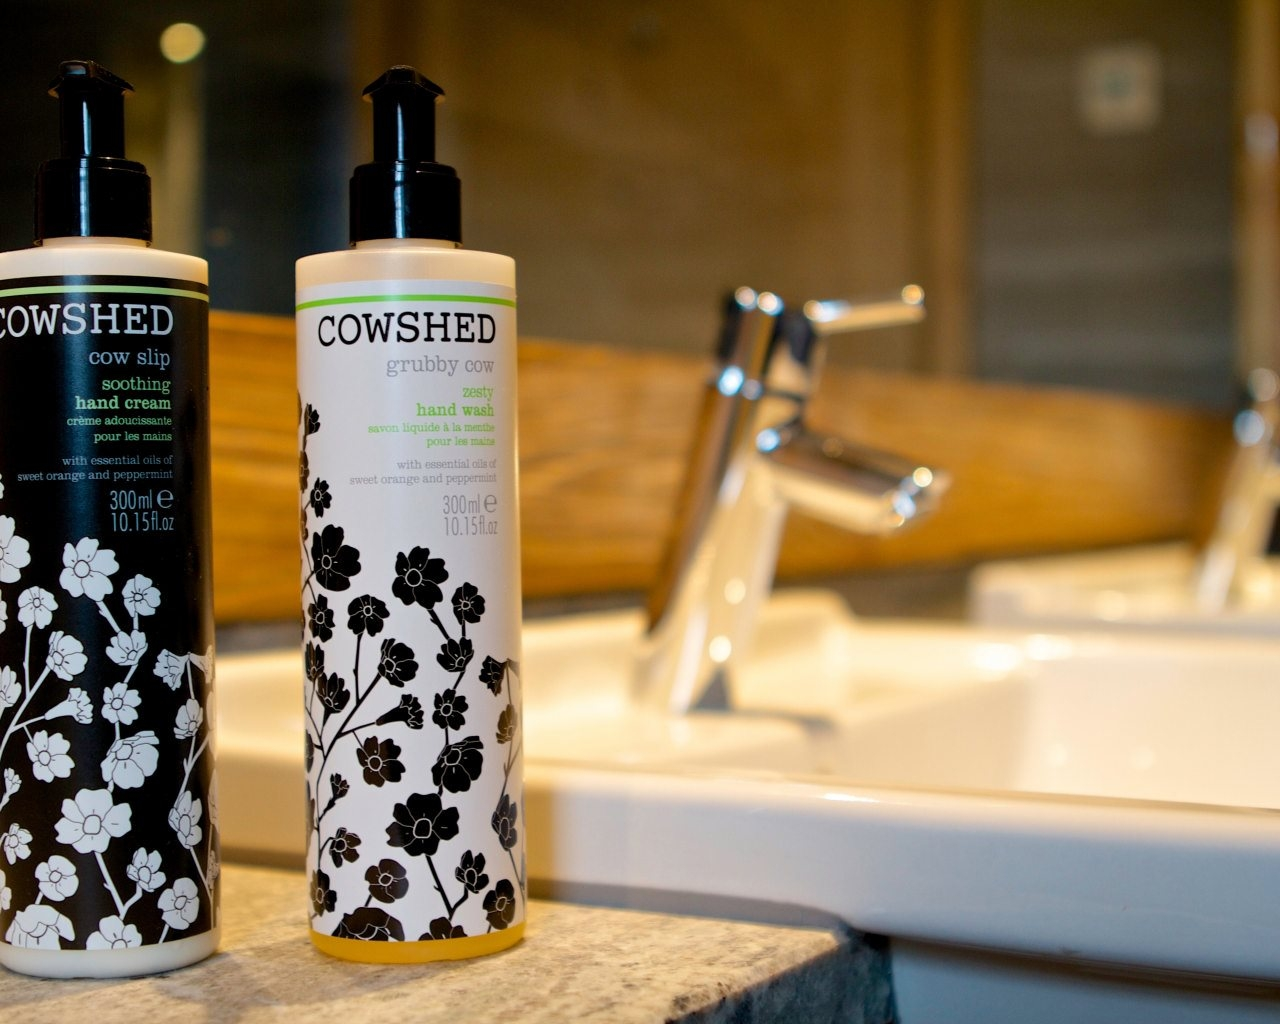 Cowshed goodies everywhere!